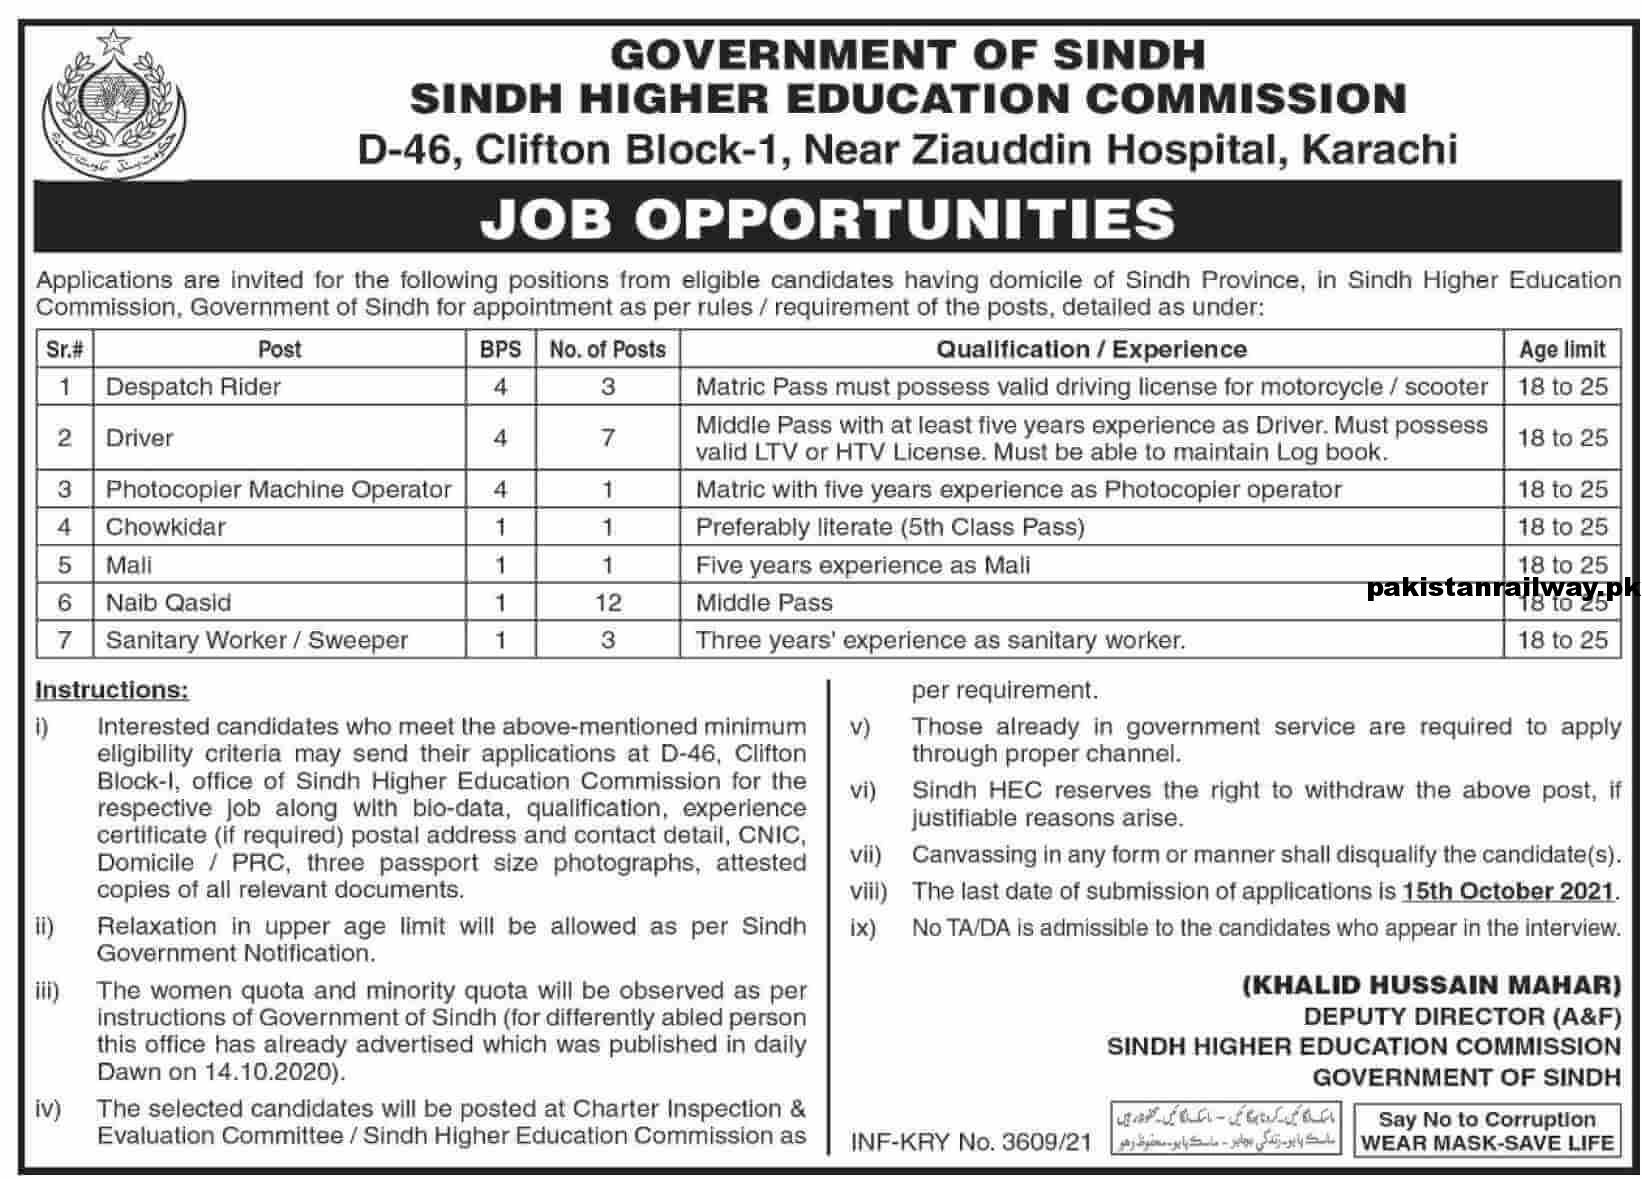 Govt of Sindh Jobs Today At Sindh Higher Education Commission   Download Application Form